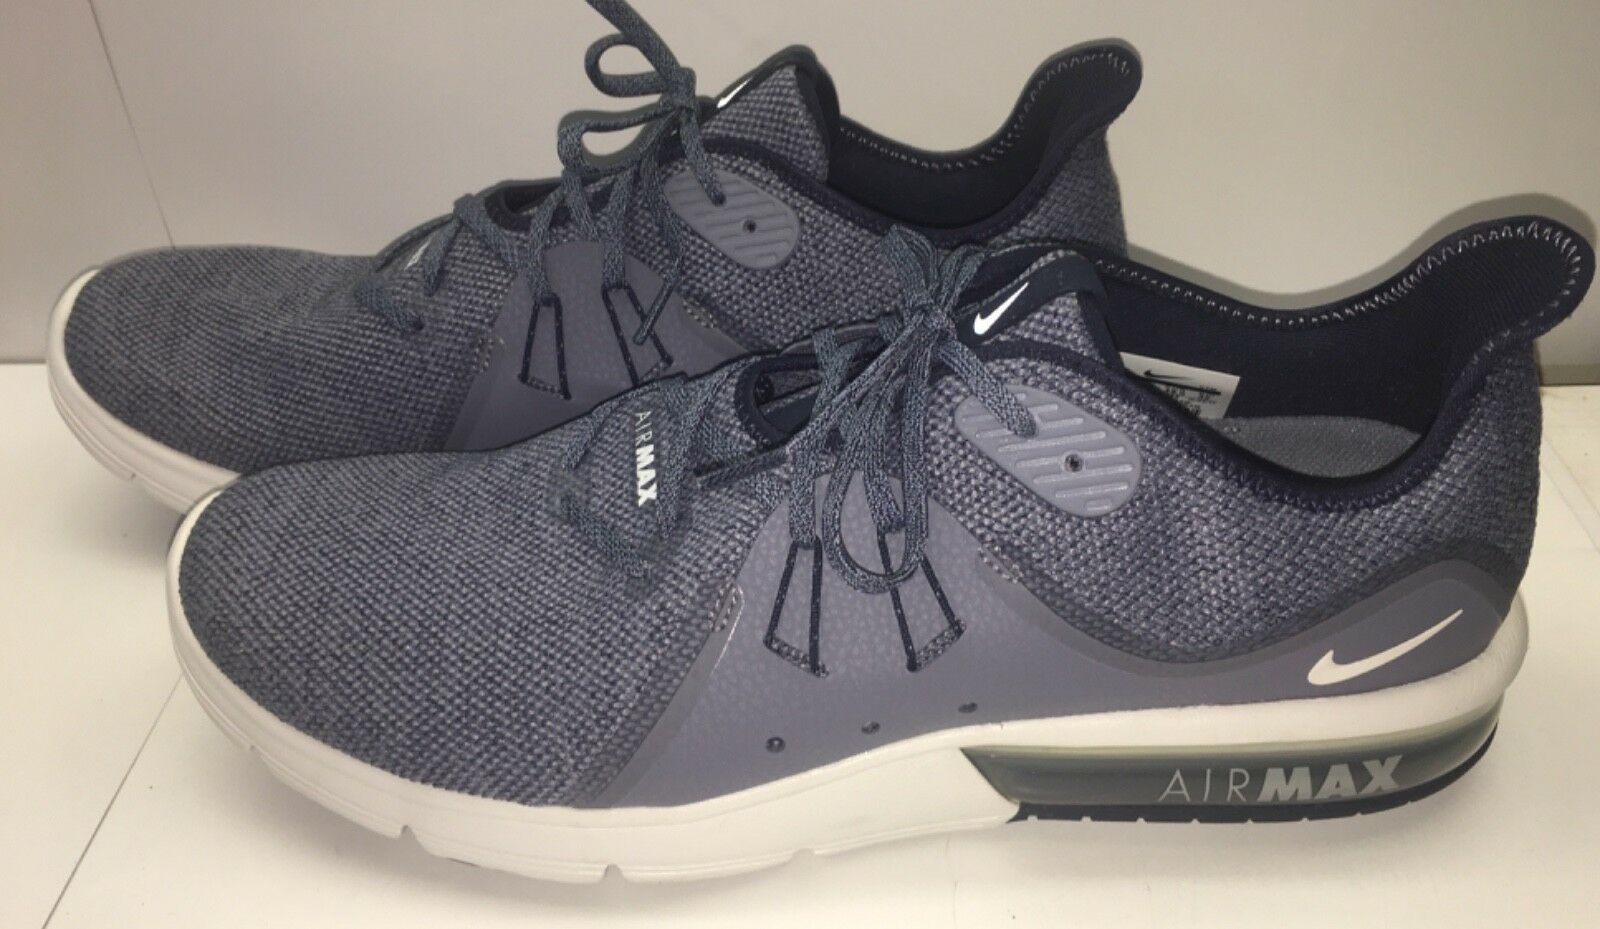 Men's NIKE AIR MAX SEQUENT 3 Running Shoes OBSIDIAN BLUE WHITE Comfortable The most popular shoes for men and women